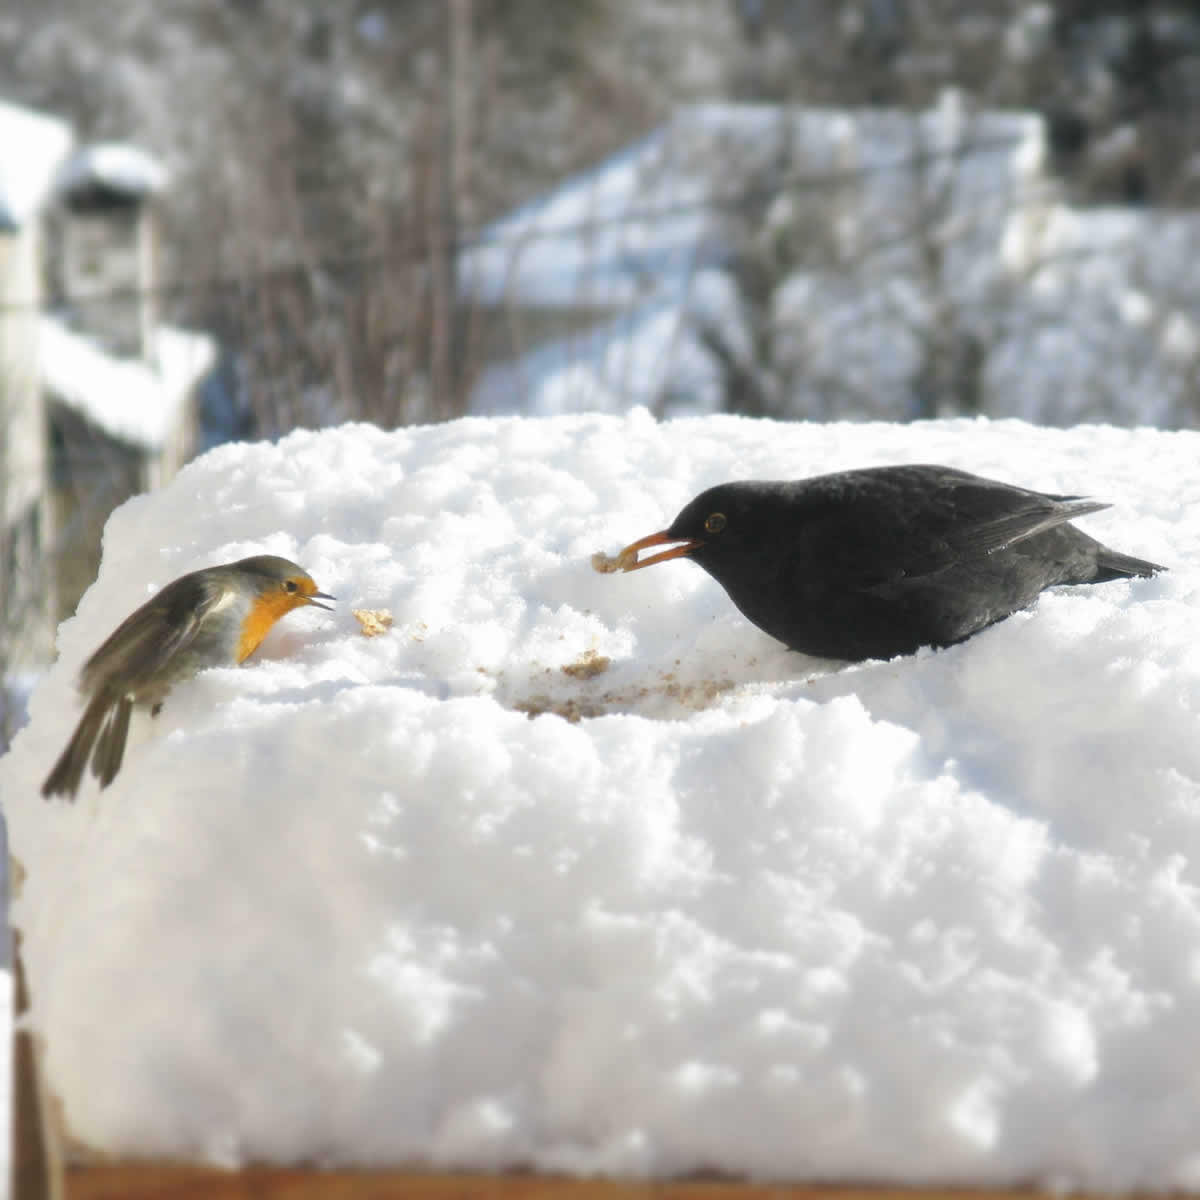 Blackbird vs Red Robin, duel for the breadcrumb!